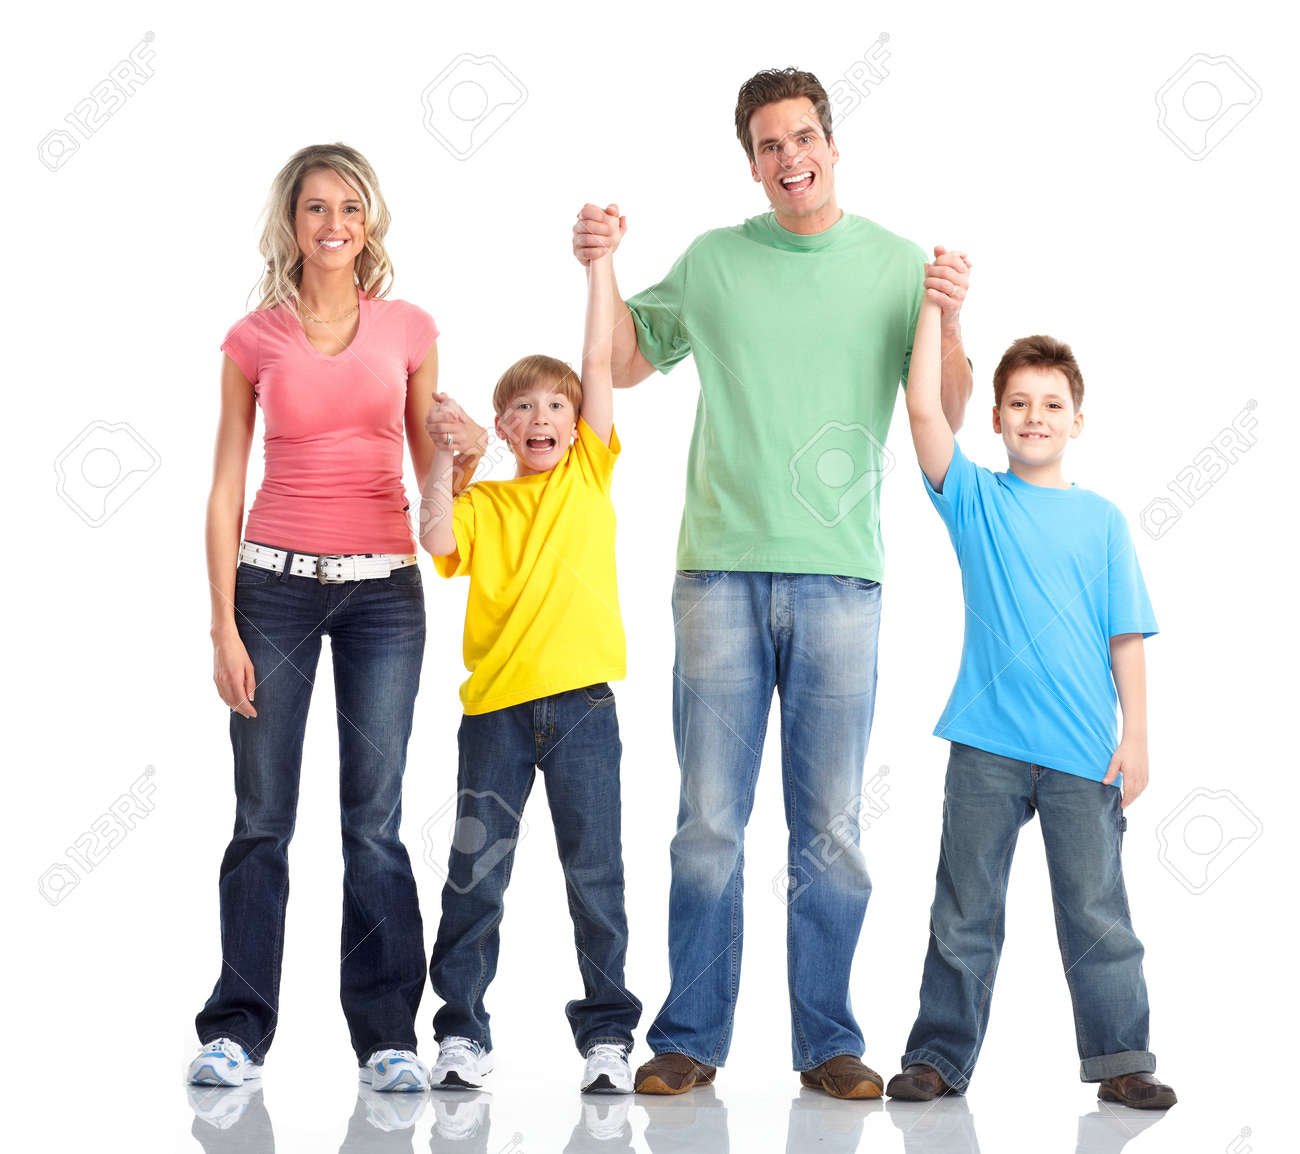 Happy family. Father, mother and children. Over white background Stock Photo - 7635150